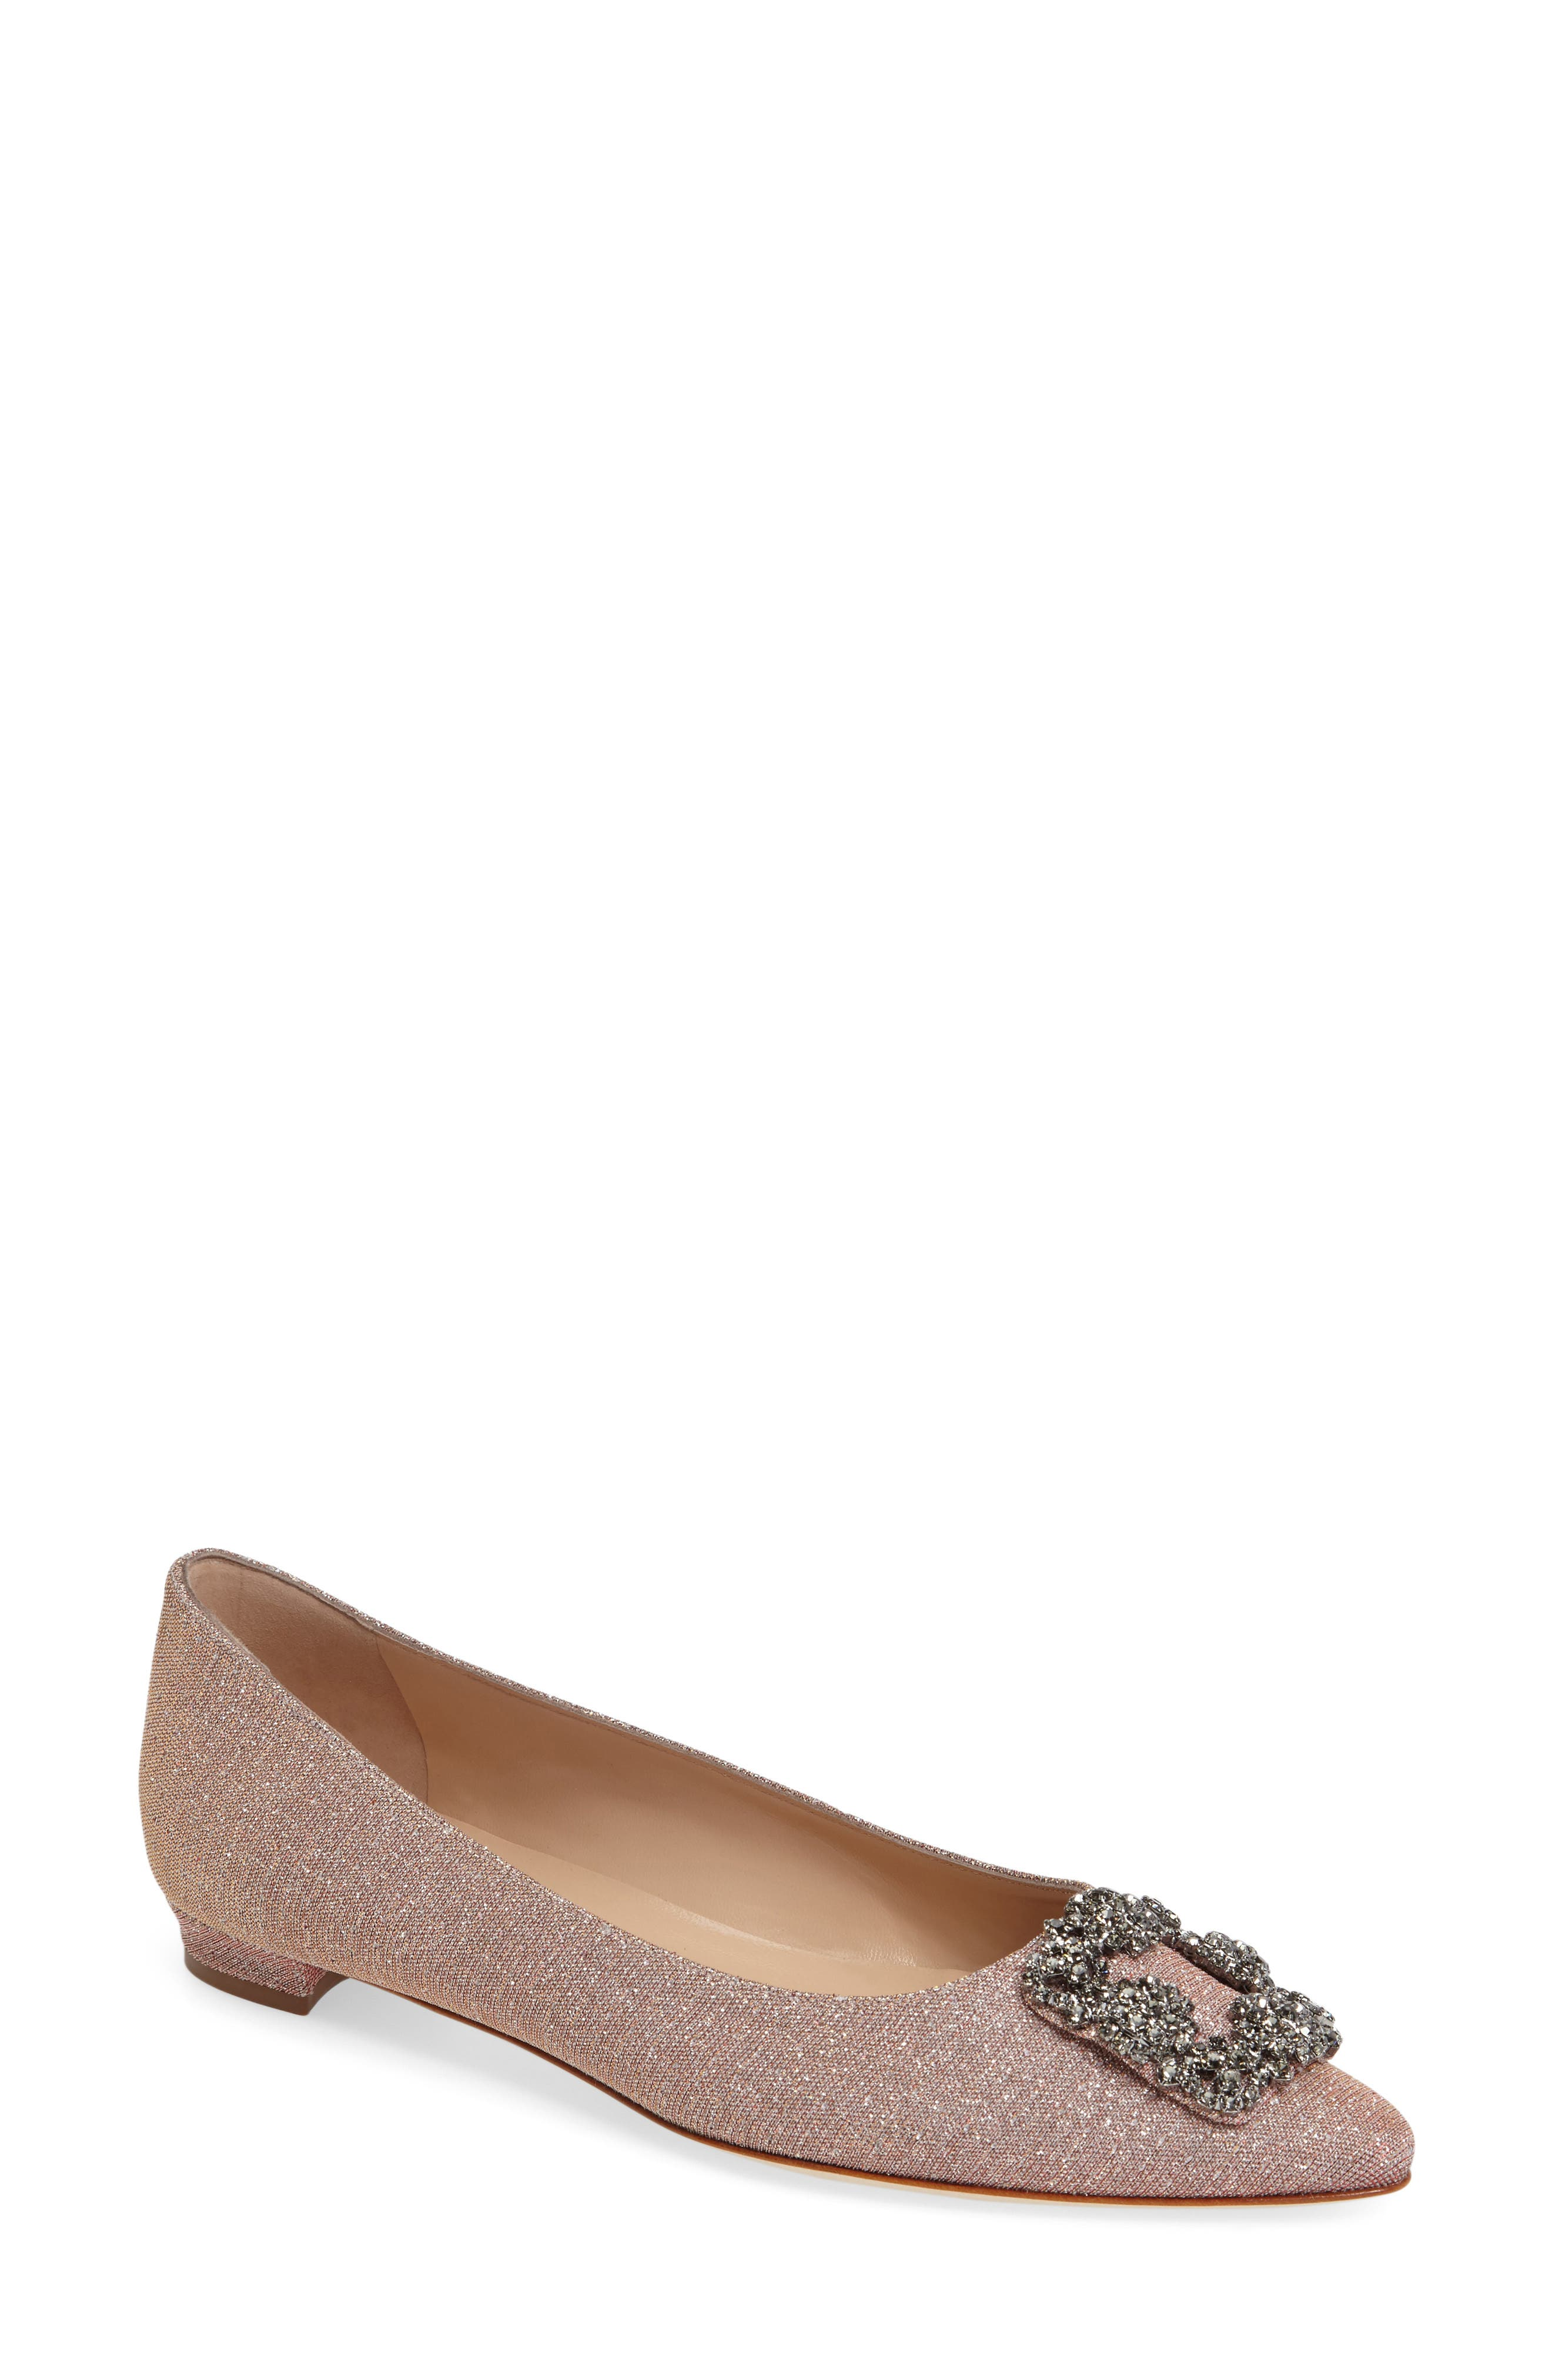 MANOLO BLAHNIK 'Hangisi' Jeweled Pointy Toe Flat, Main, color, CHAMPAGNE FABRIC